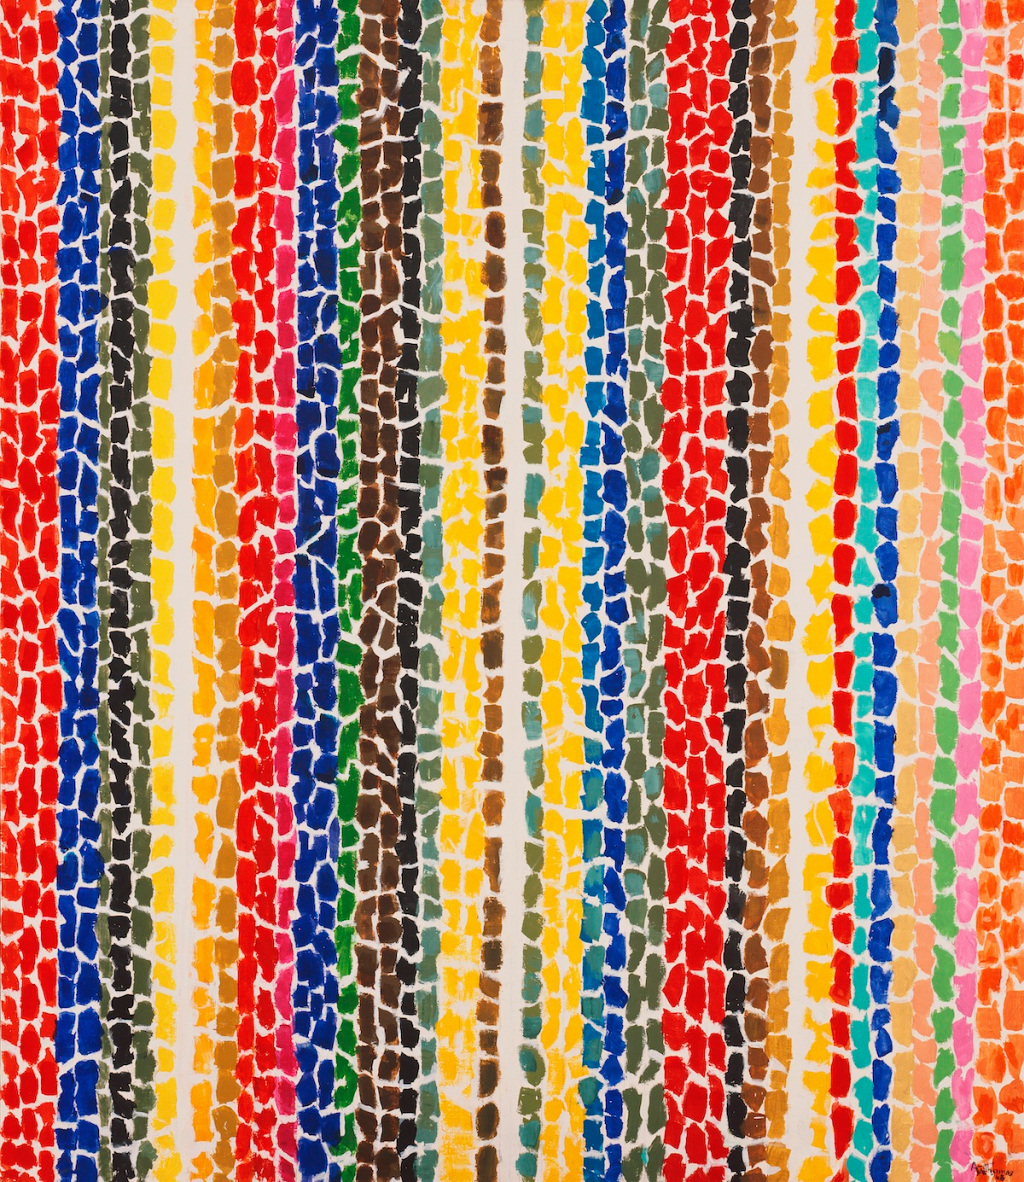 Who Is Alma Thomas, and Why Is She Important? – ARTnews.com